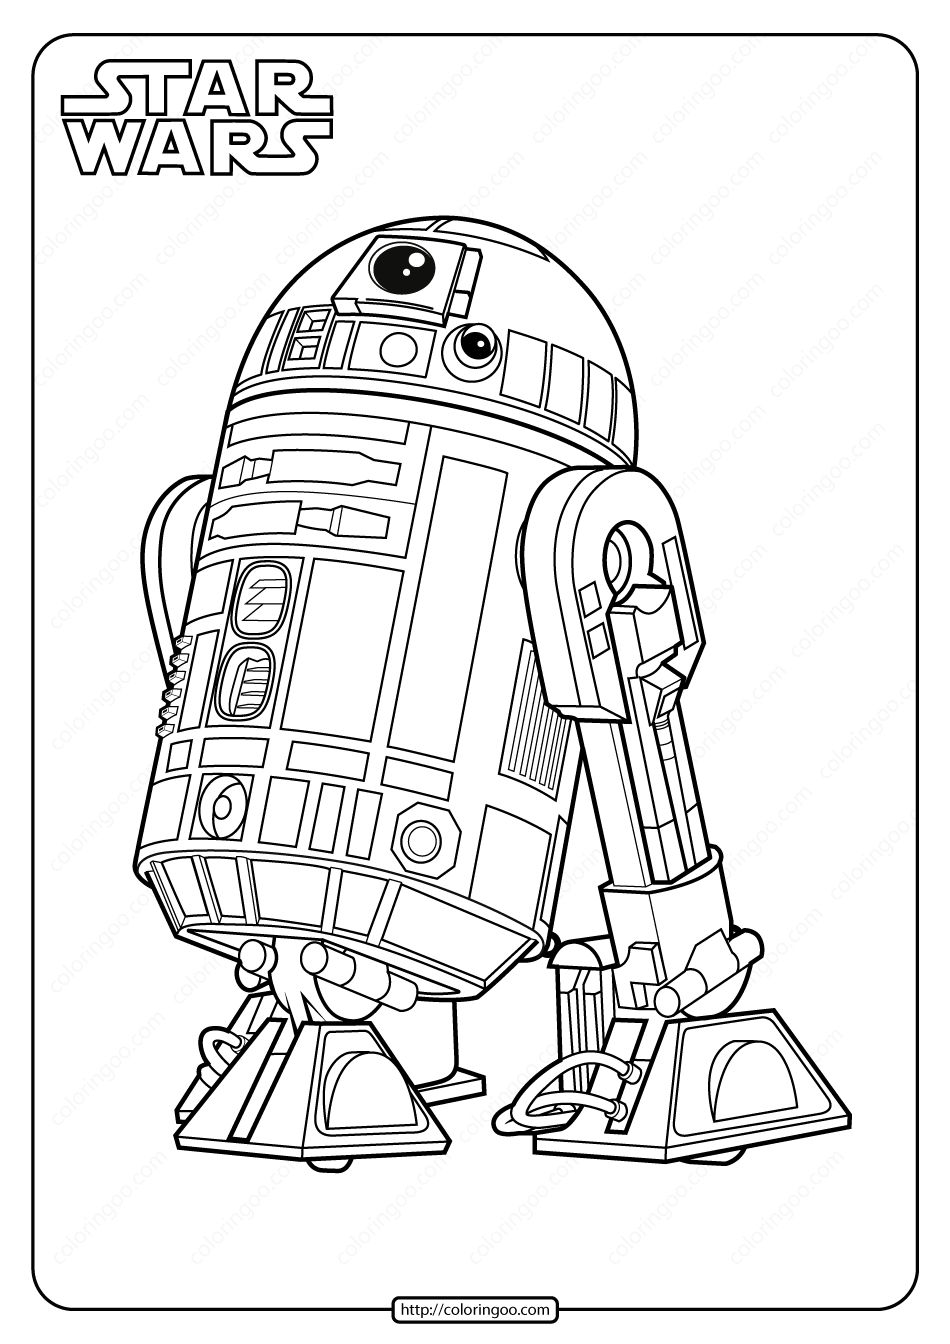 You Searched For Cookie Star Wars Gifts Star Wars Coloring Book Star Wars Drawings Star Wars Painting